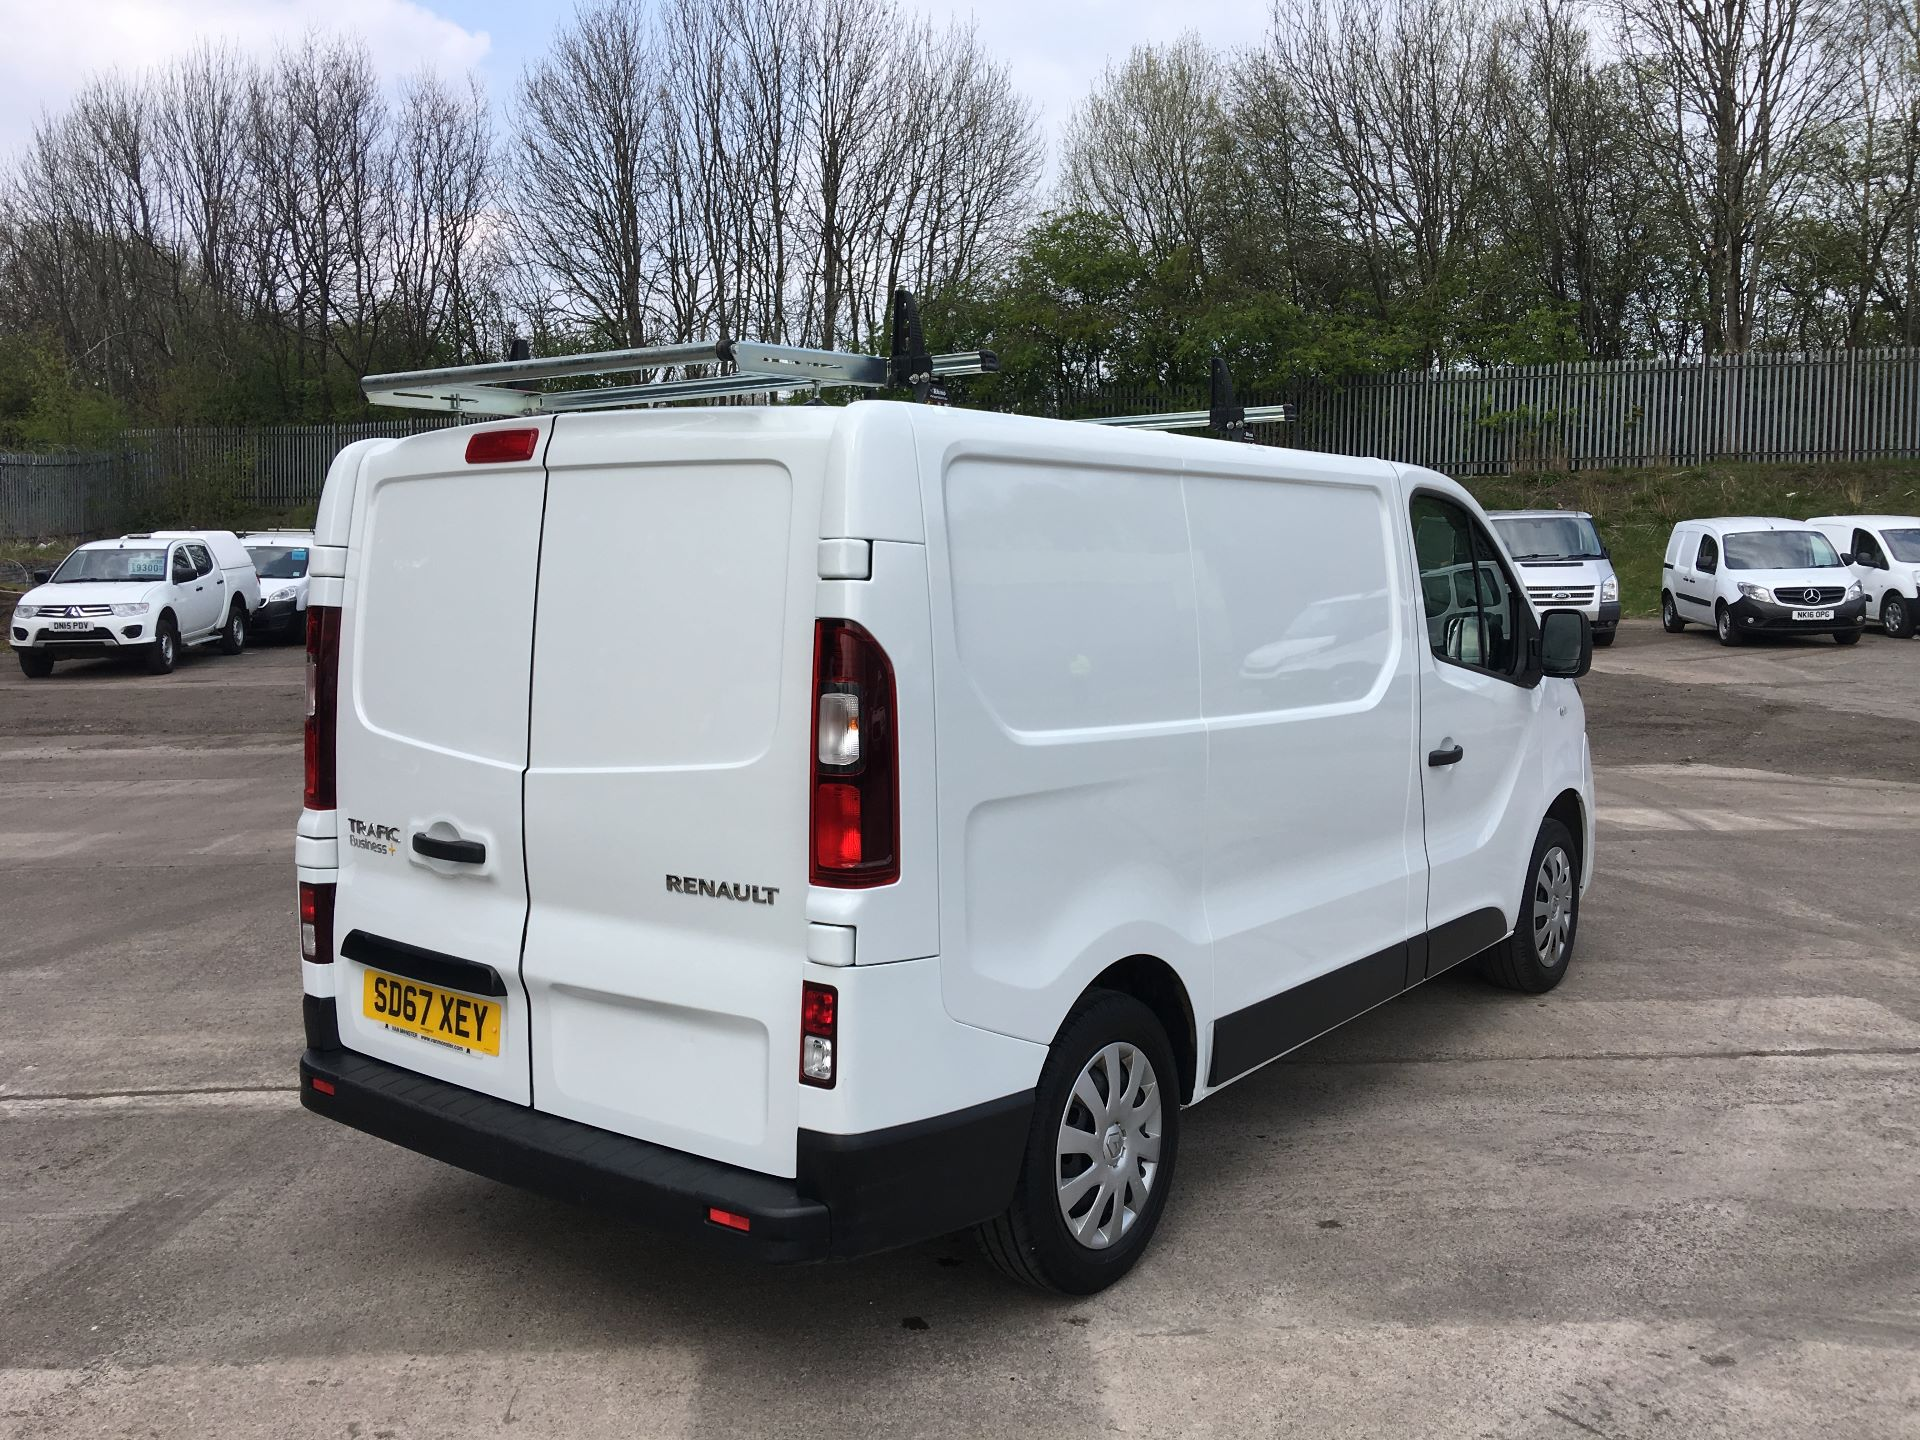 2017 Renault Trafic SL27 DCI 120PS BUSINESS+ VAN EURO 6 (SD67XEY) Image 10